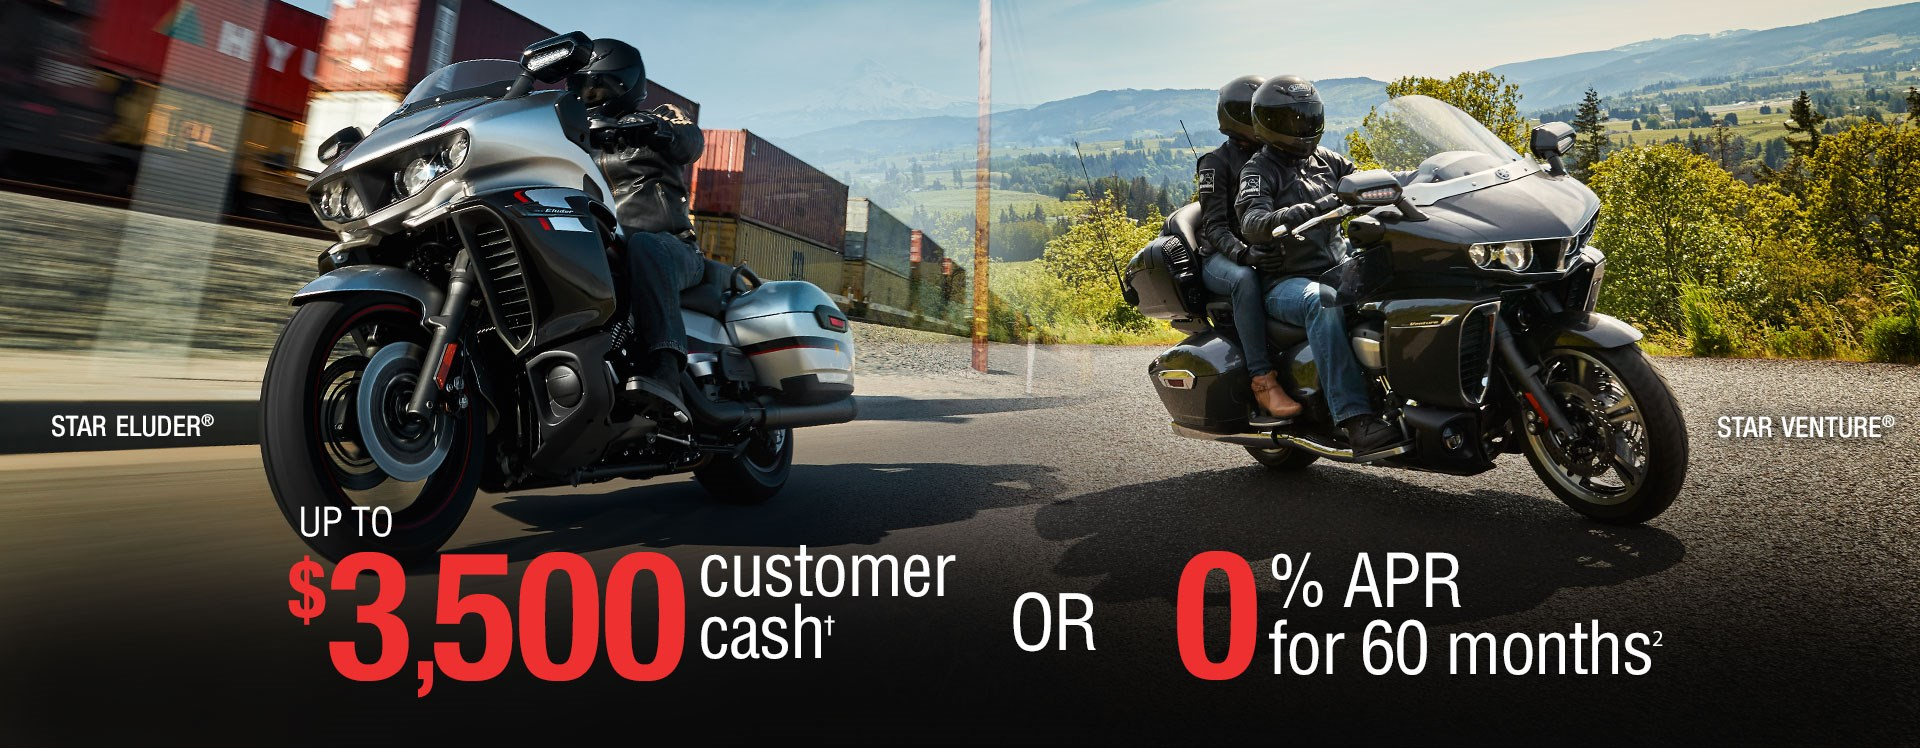 Yamaha Touring Bike Deals